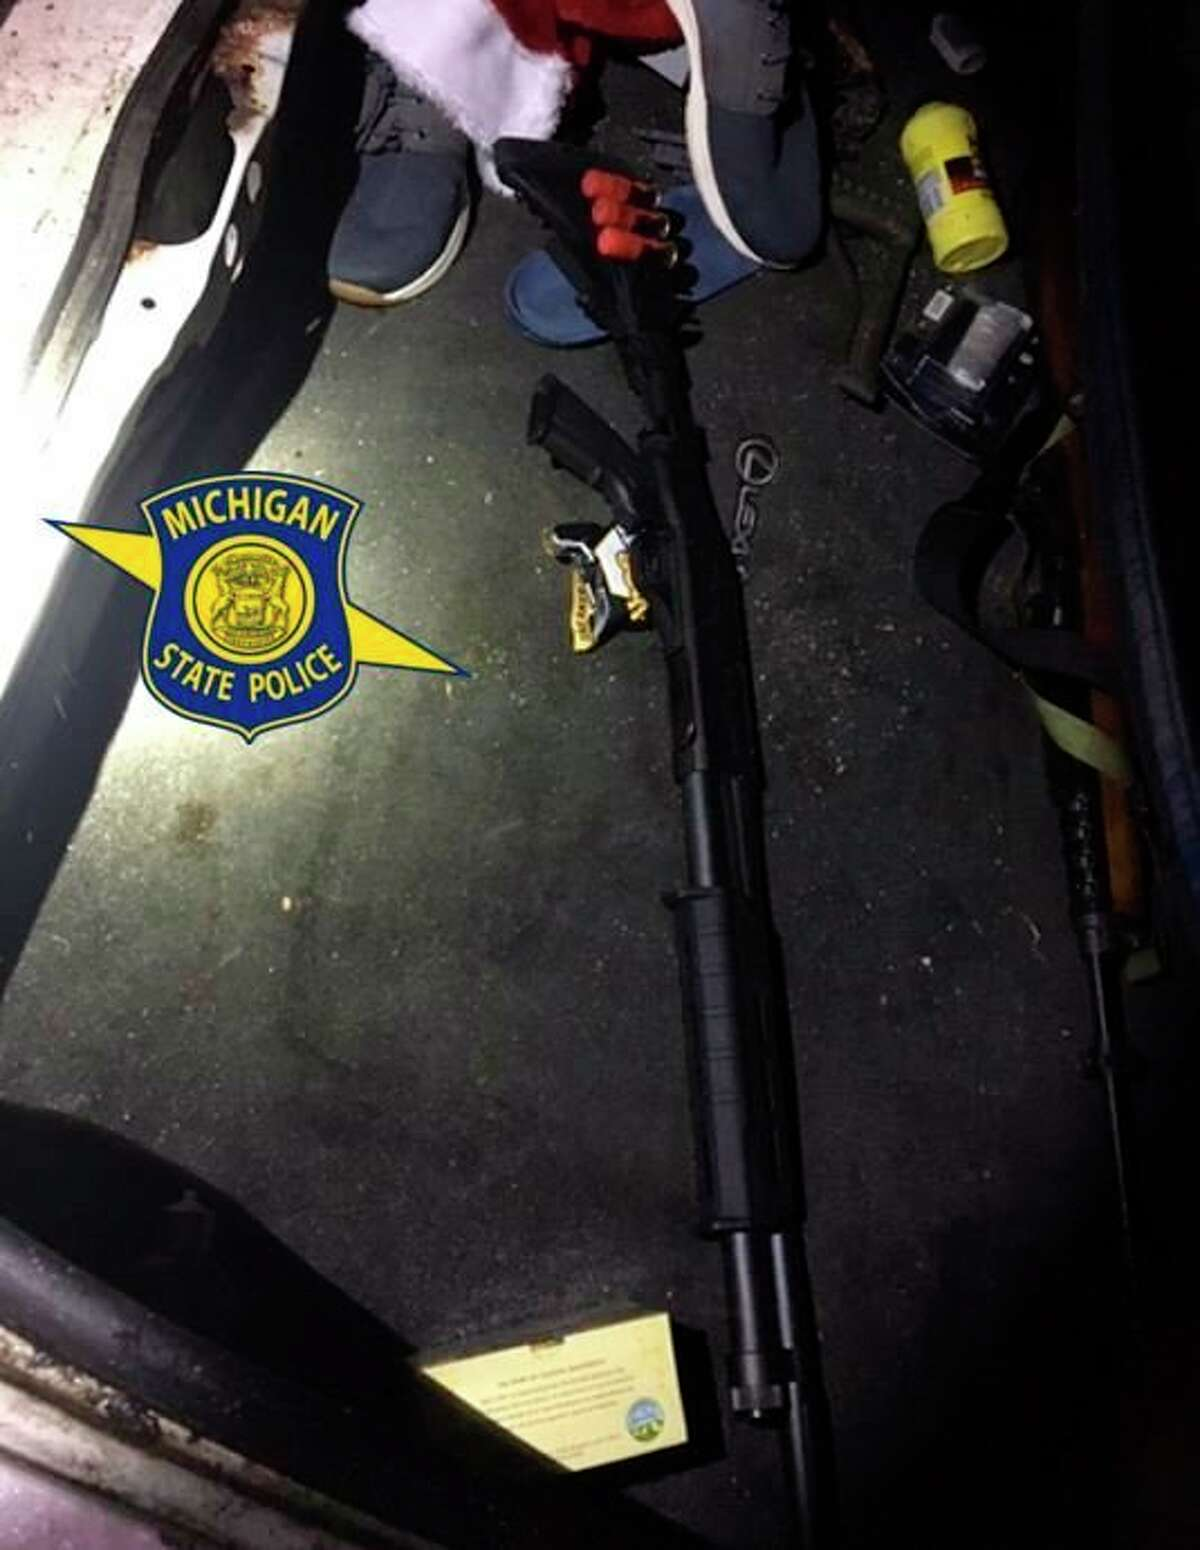 Police found three unloaded long guns in the trunk of a Lansing man's vehicle after responding to a car-deer collision call and finding the car's owner in the road and wielding a machete. (Courtesy Photo)